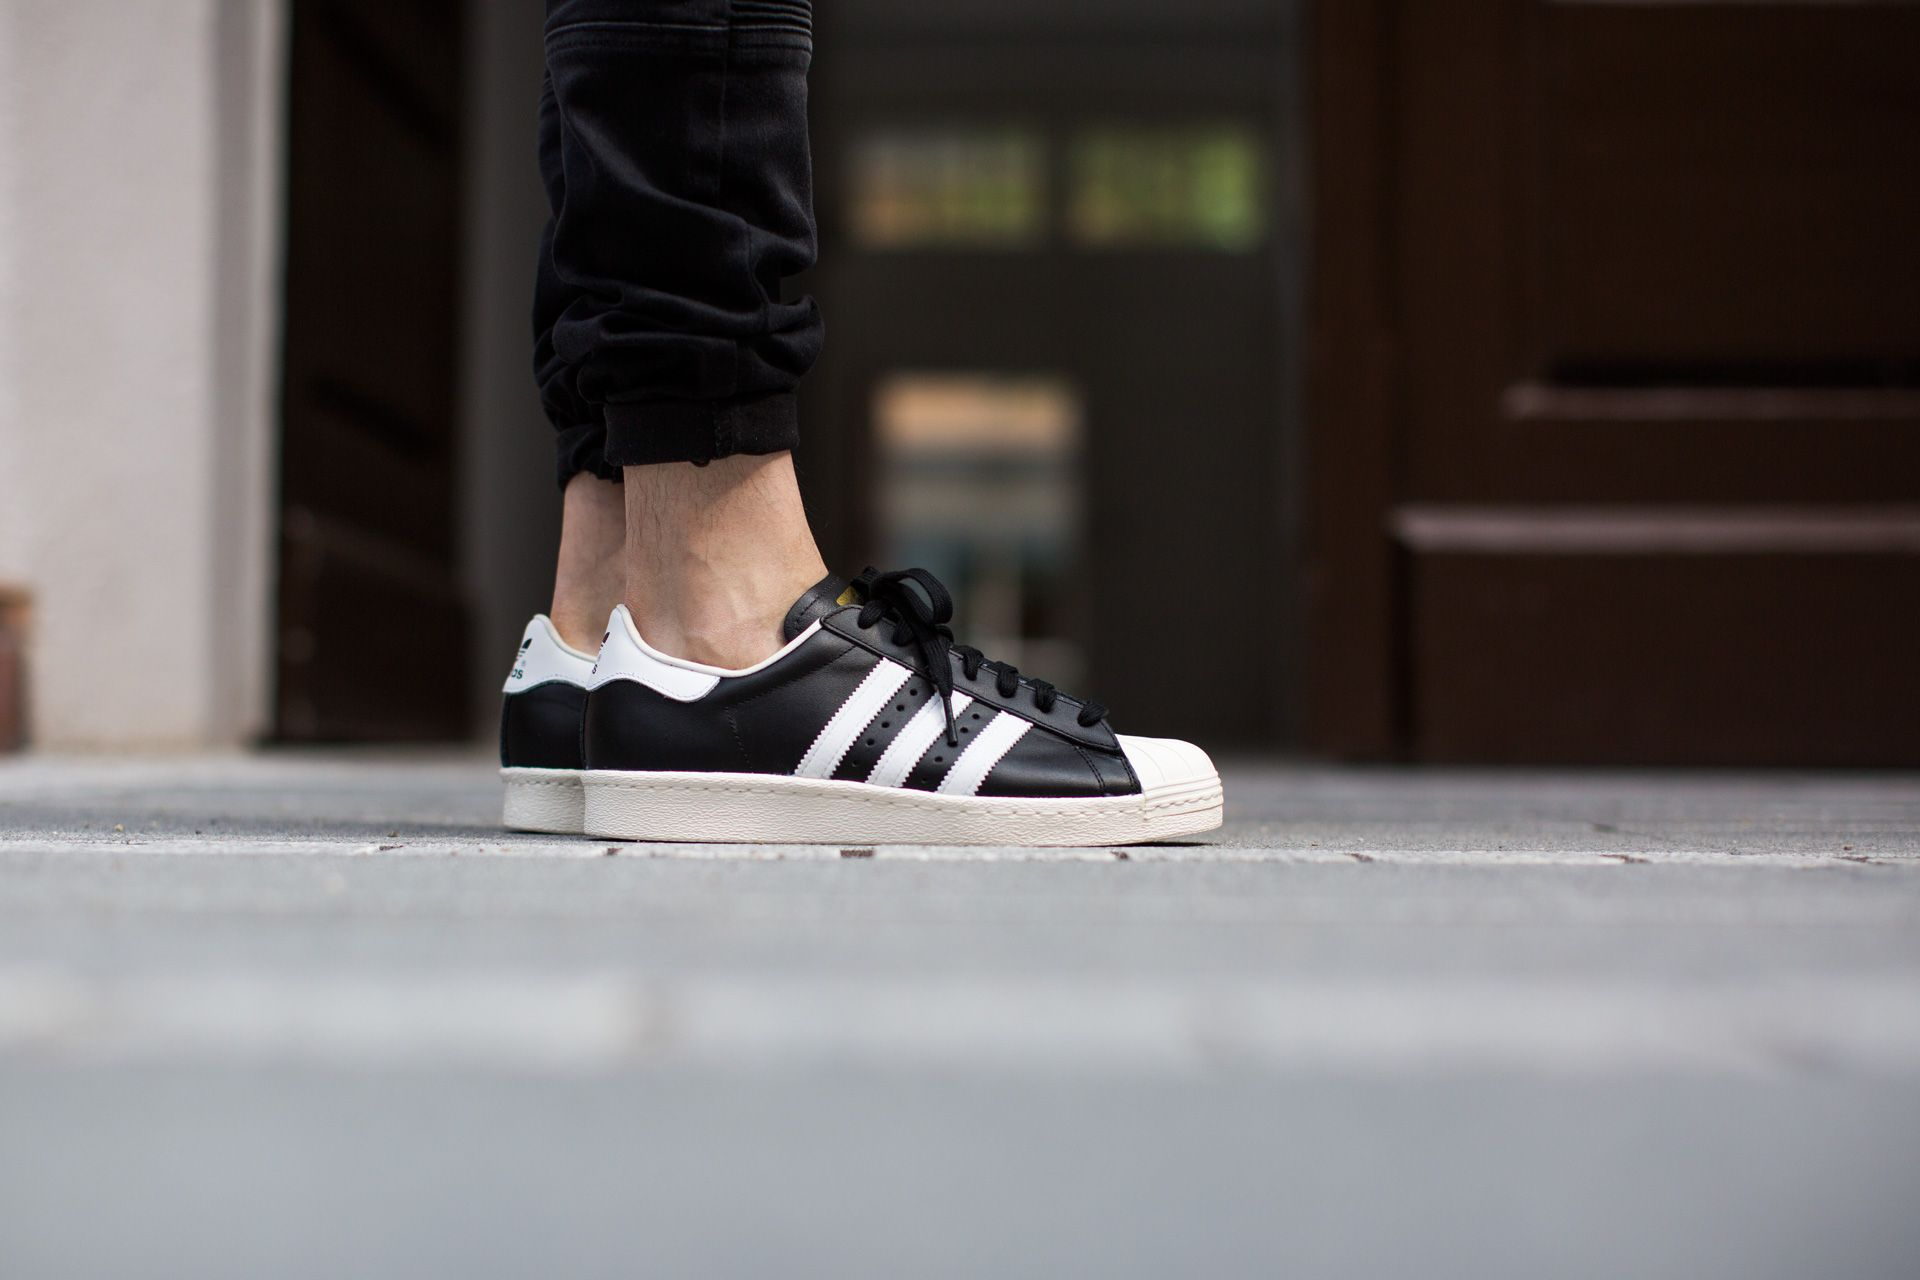 check out 72623 ef97b ADIDAS ORIGINALS SUPERSTAR 80S BLACK1 WHT CHALK2 available at  www.tint-footwear.com adidas-superstar-80s-g61069 adidas originals  superstar 80s shell toes ...